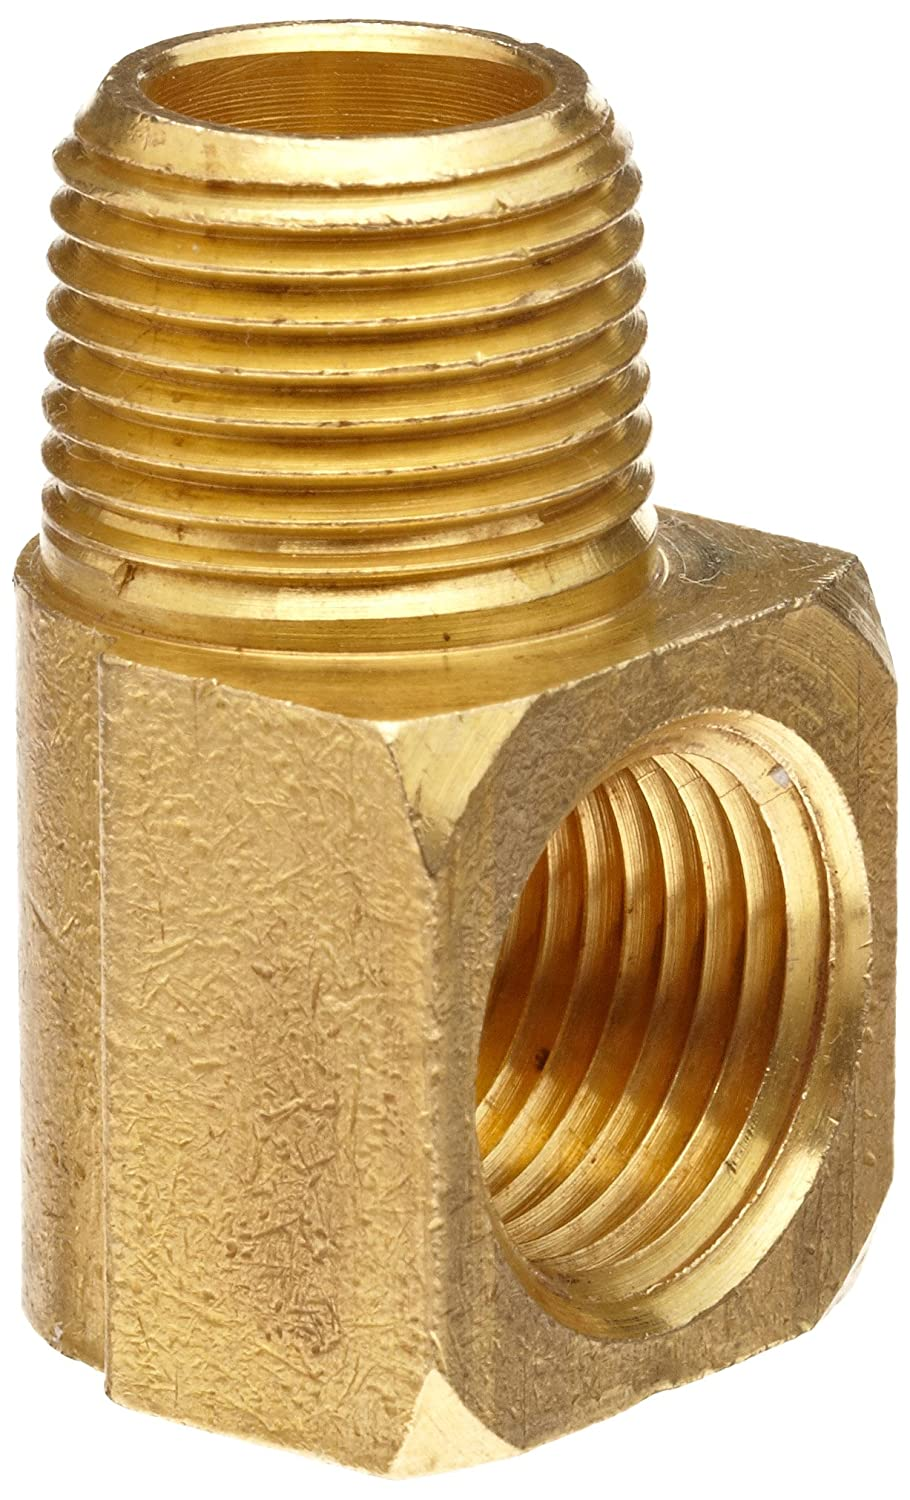 Anderson Metals Brass Pipe Fitting 90 Degree Barstock Street Elbow 1/2  Male Pipe x 1/2  Female Pipe Industrial Pipe Fittings Amazon.com Industrial u0026 ...  sc 1 st  Amazon.com & Anderson Metals Brass Pipe Fitting 90 Degree Barstock Street Elbow ...